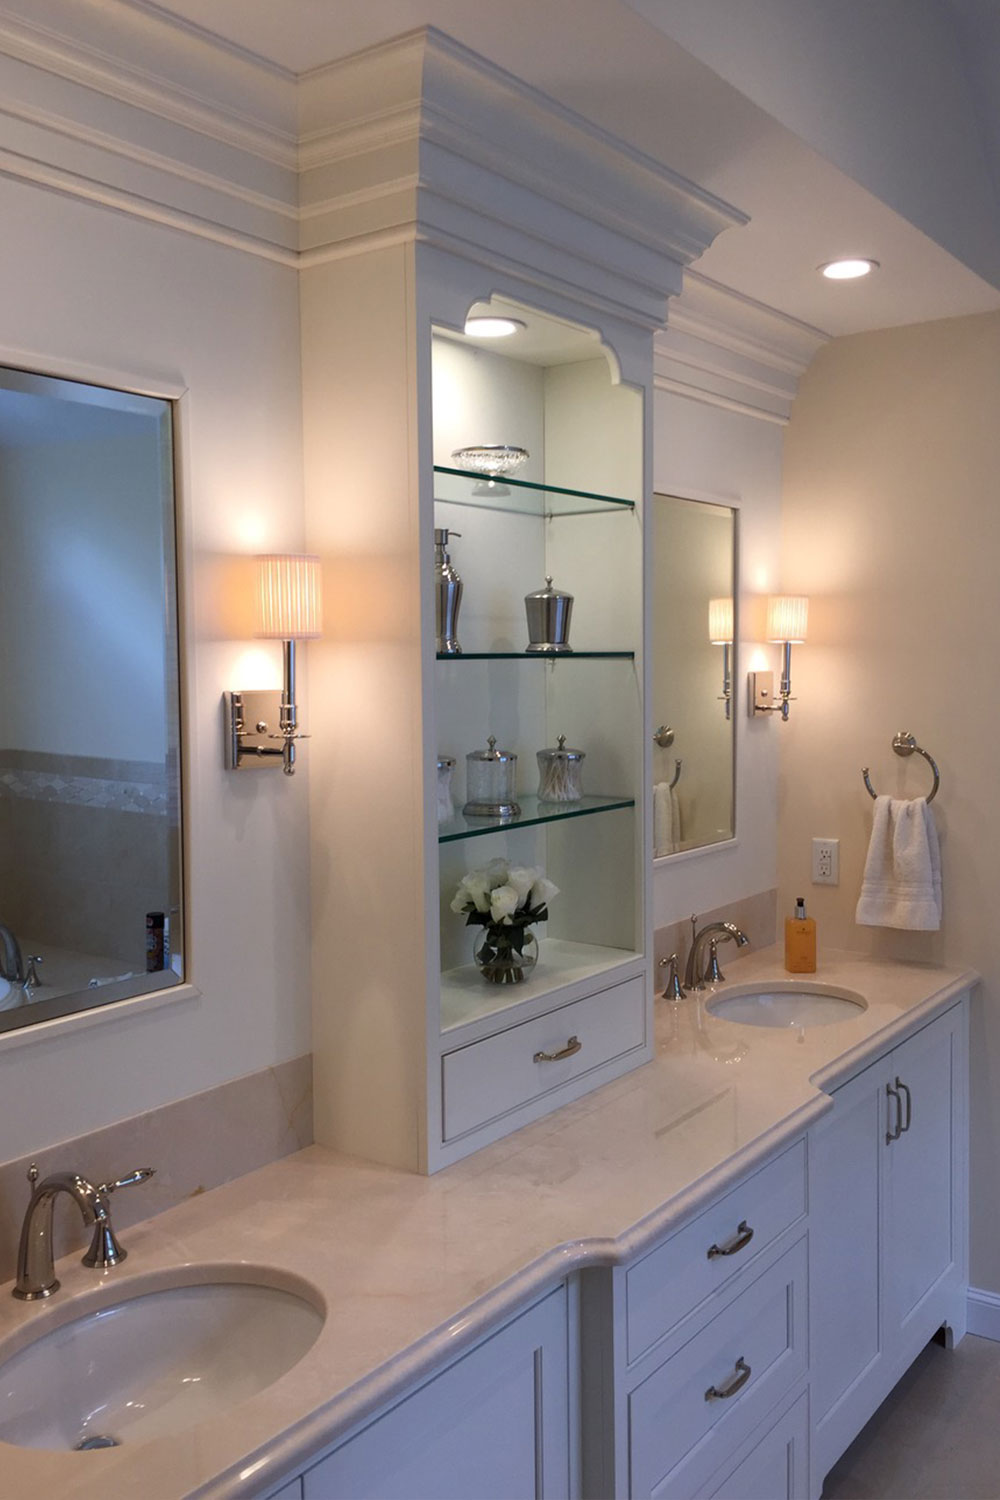 Bathroom White Cabinets Built-In Shelf Glass